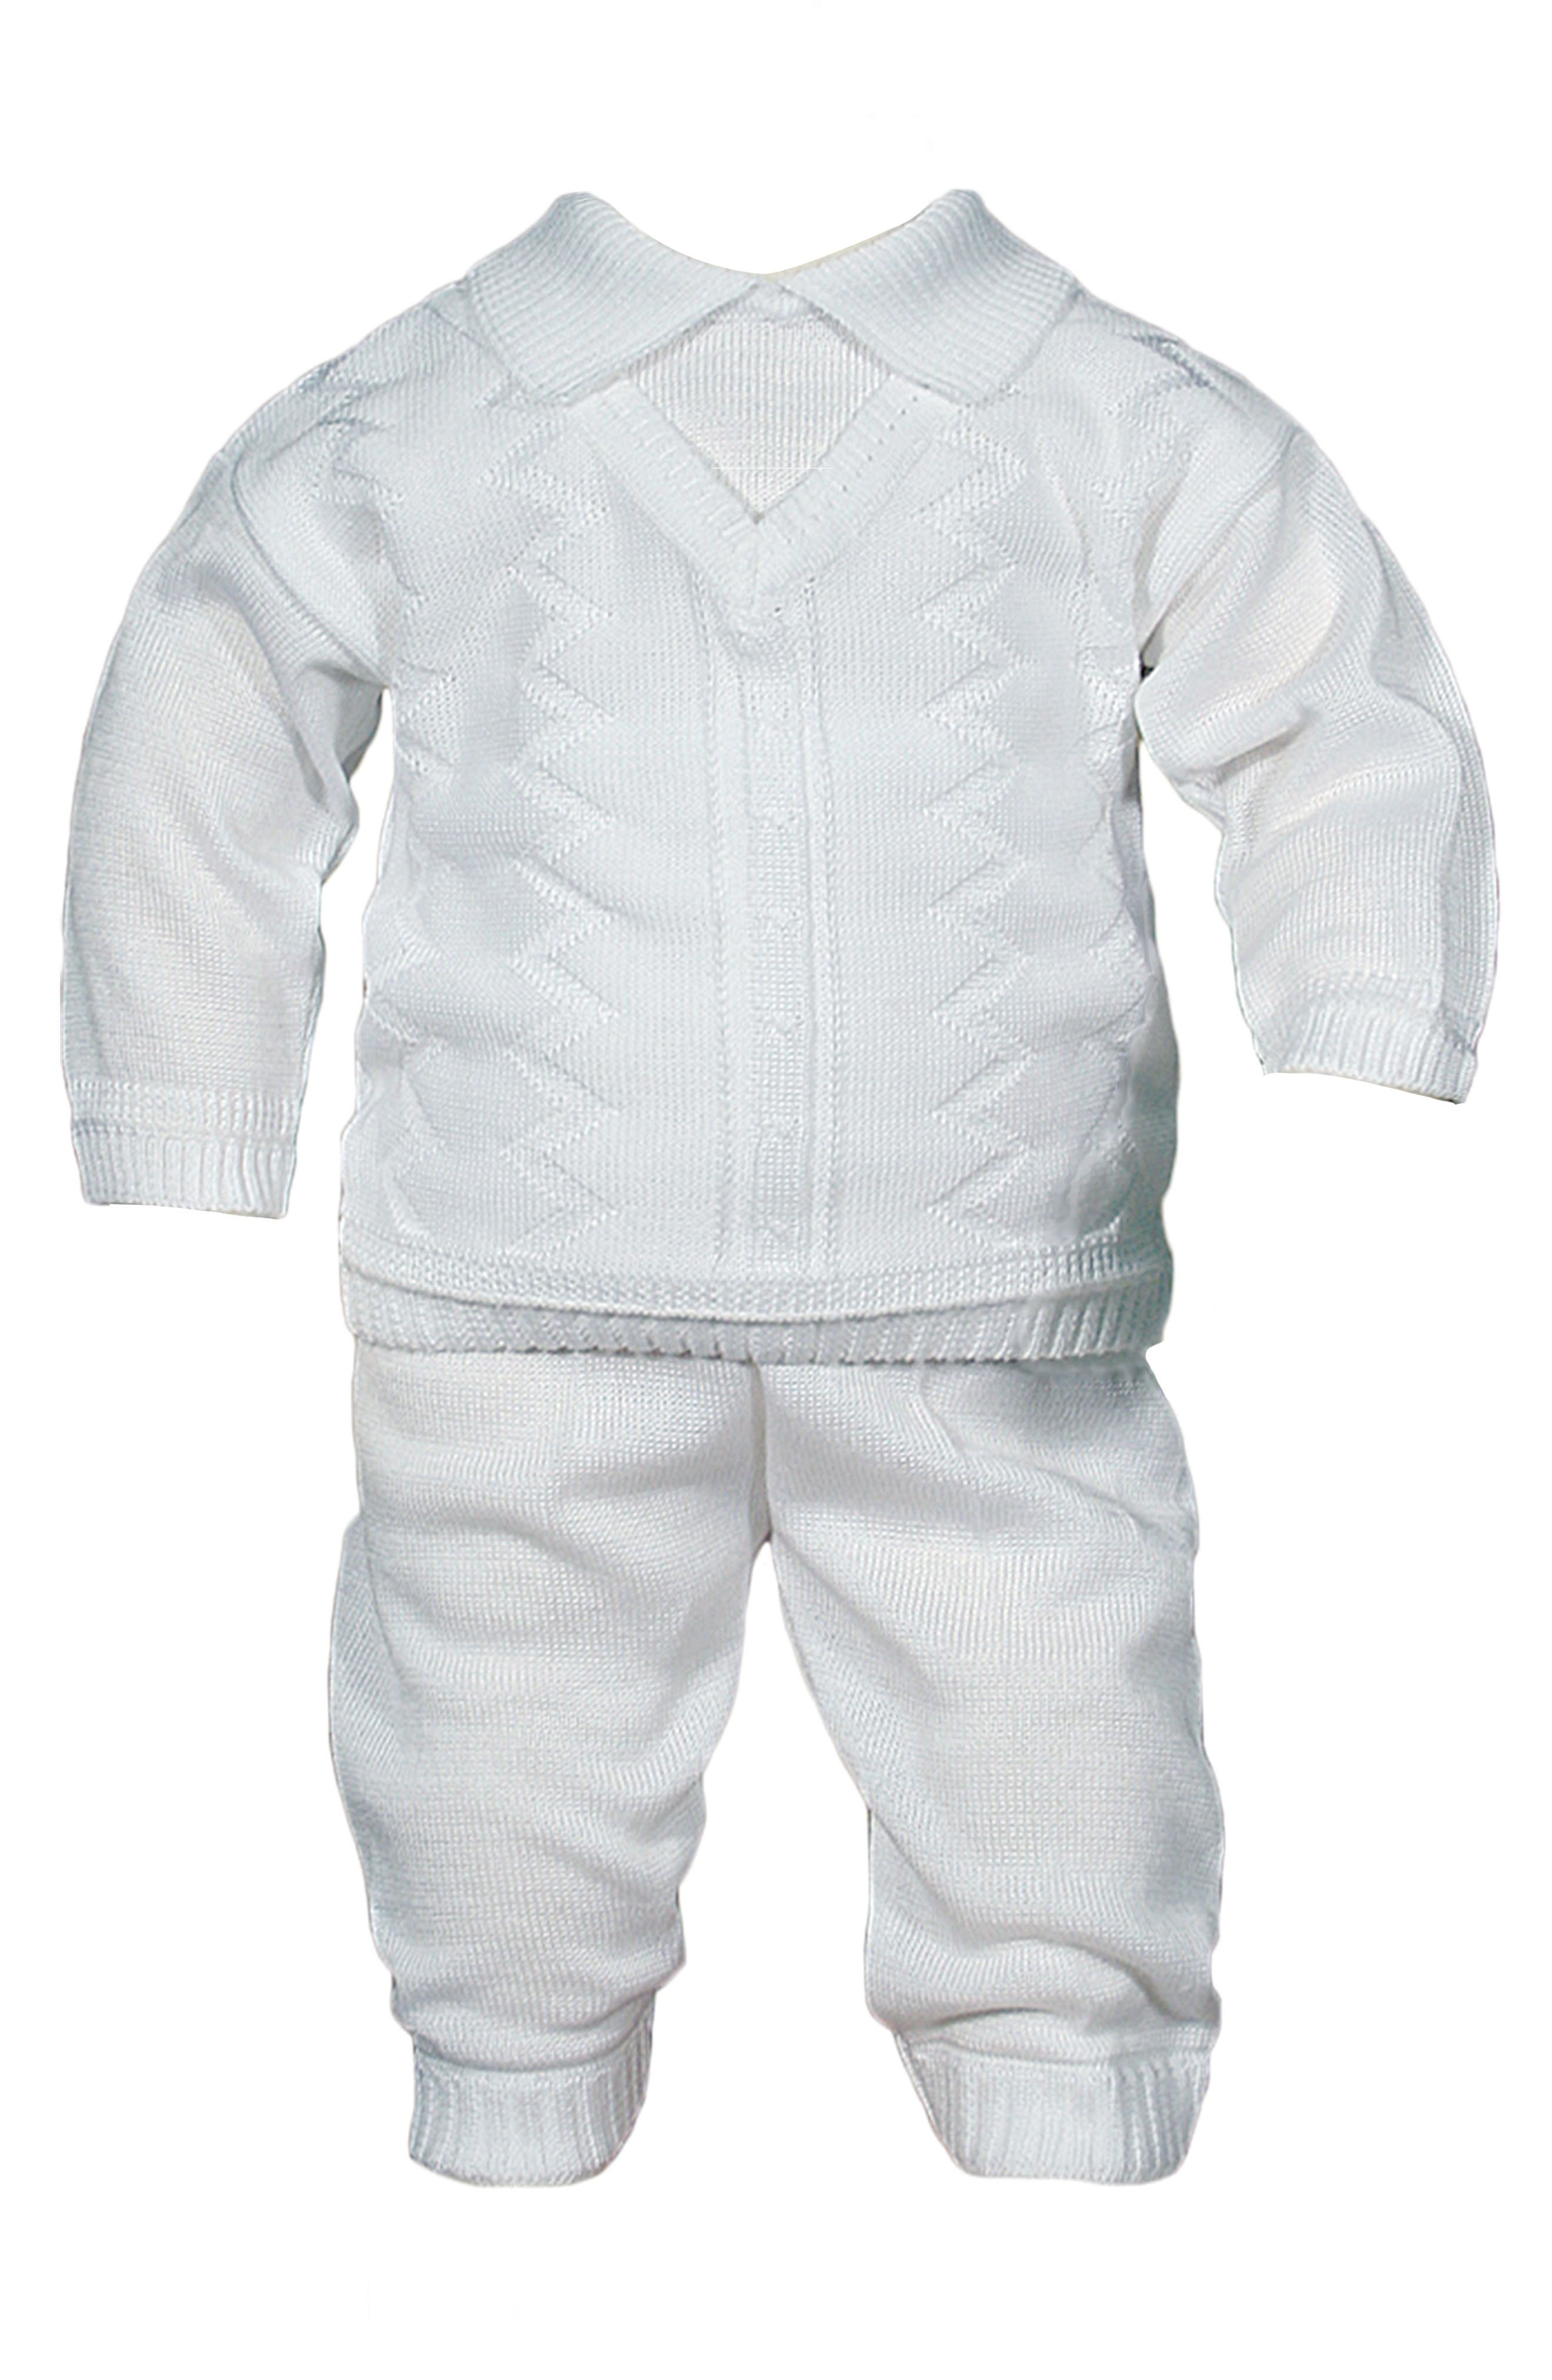 Little Things Mean A Lot Knit Shirt & Pants Set (Baby Boys)